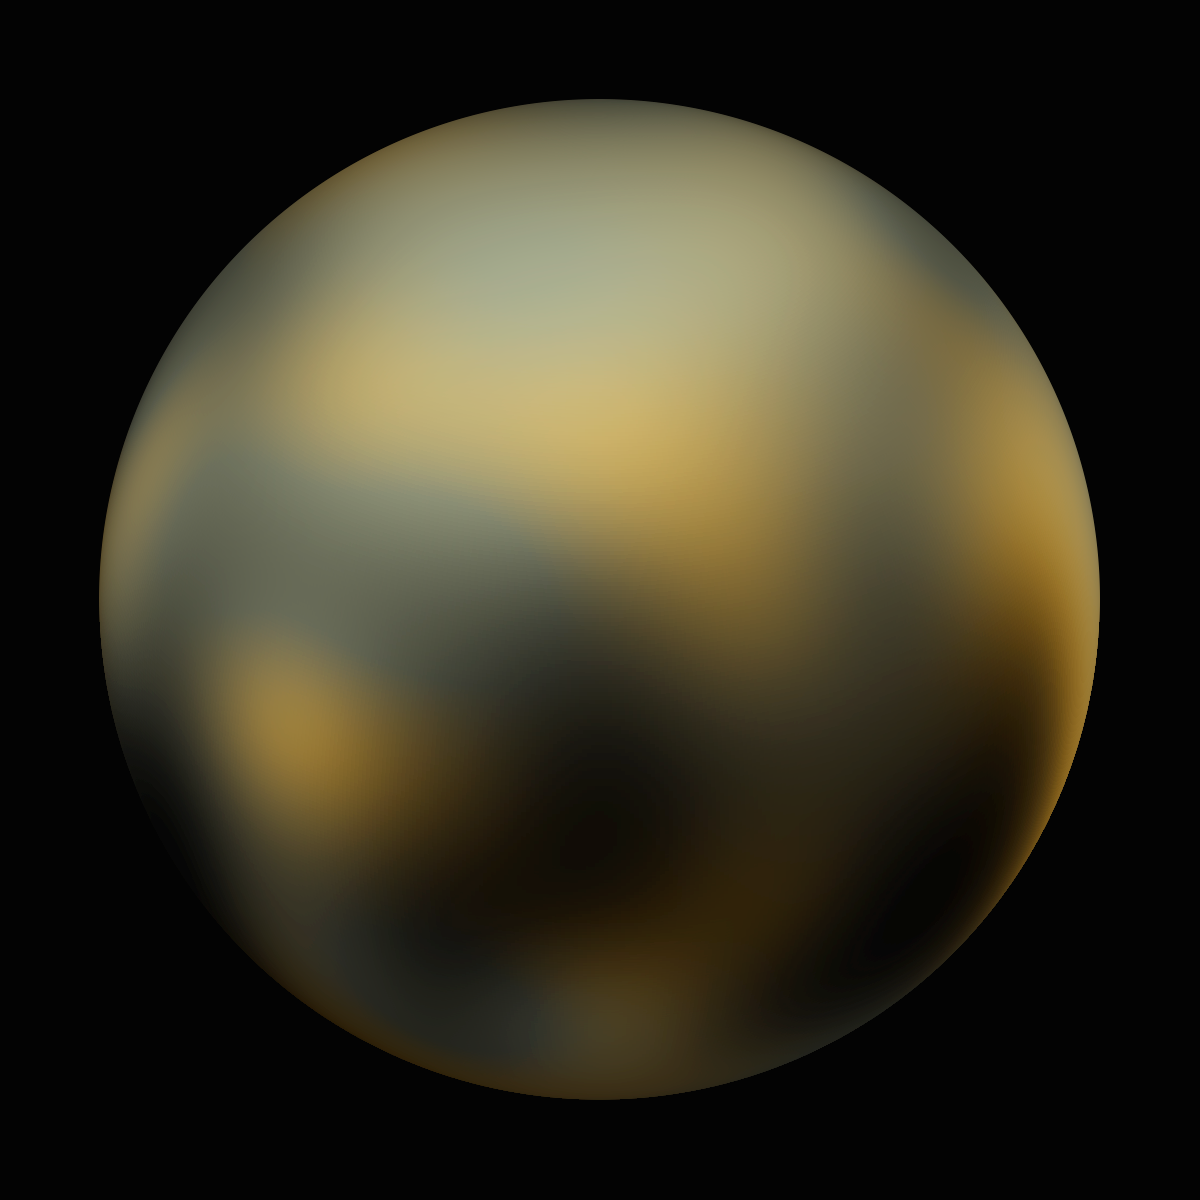 Image detail for -This is the most detailed view to date of the entire surface of Pluto ...